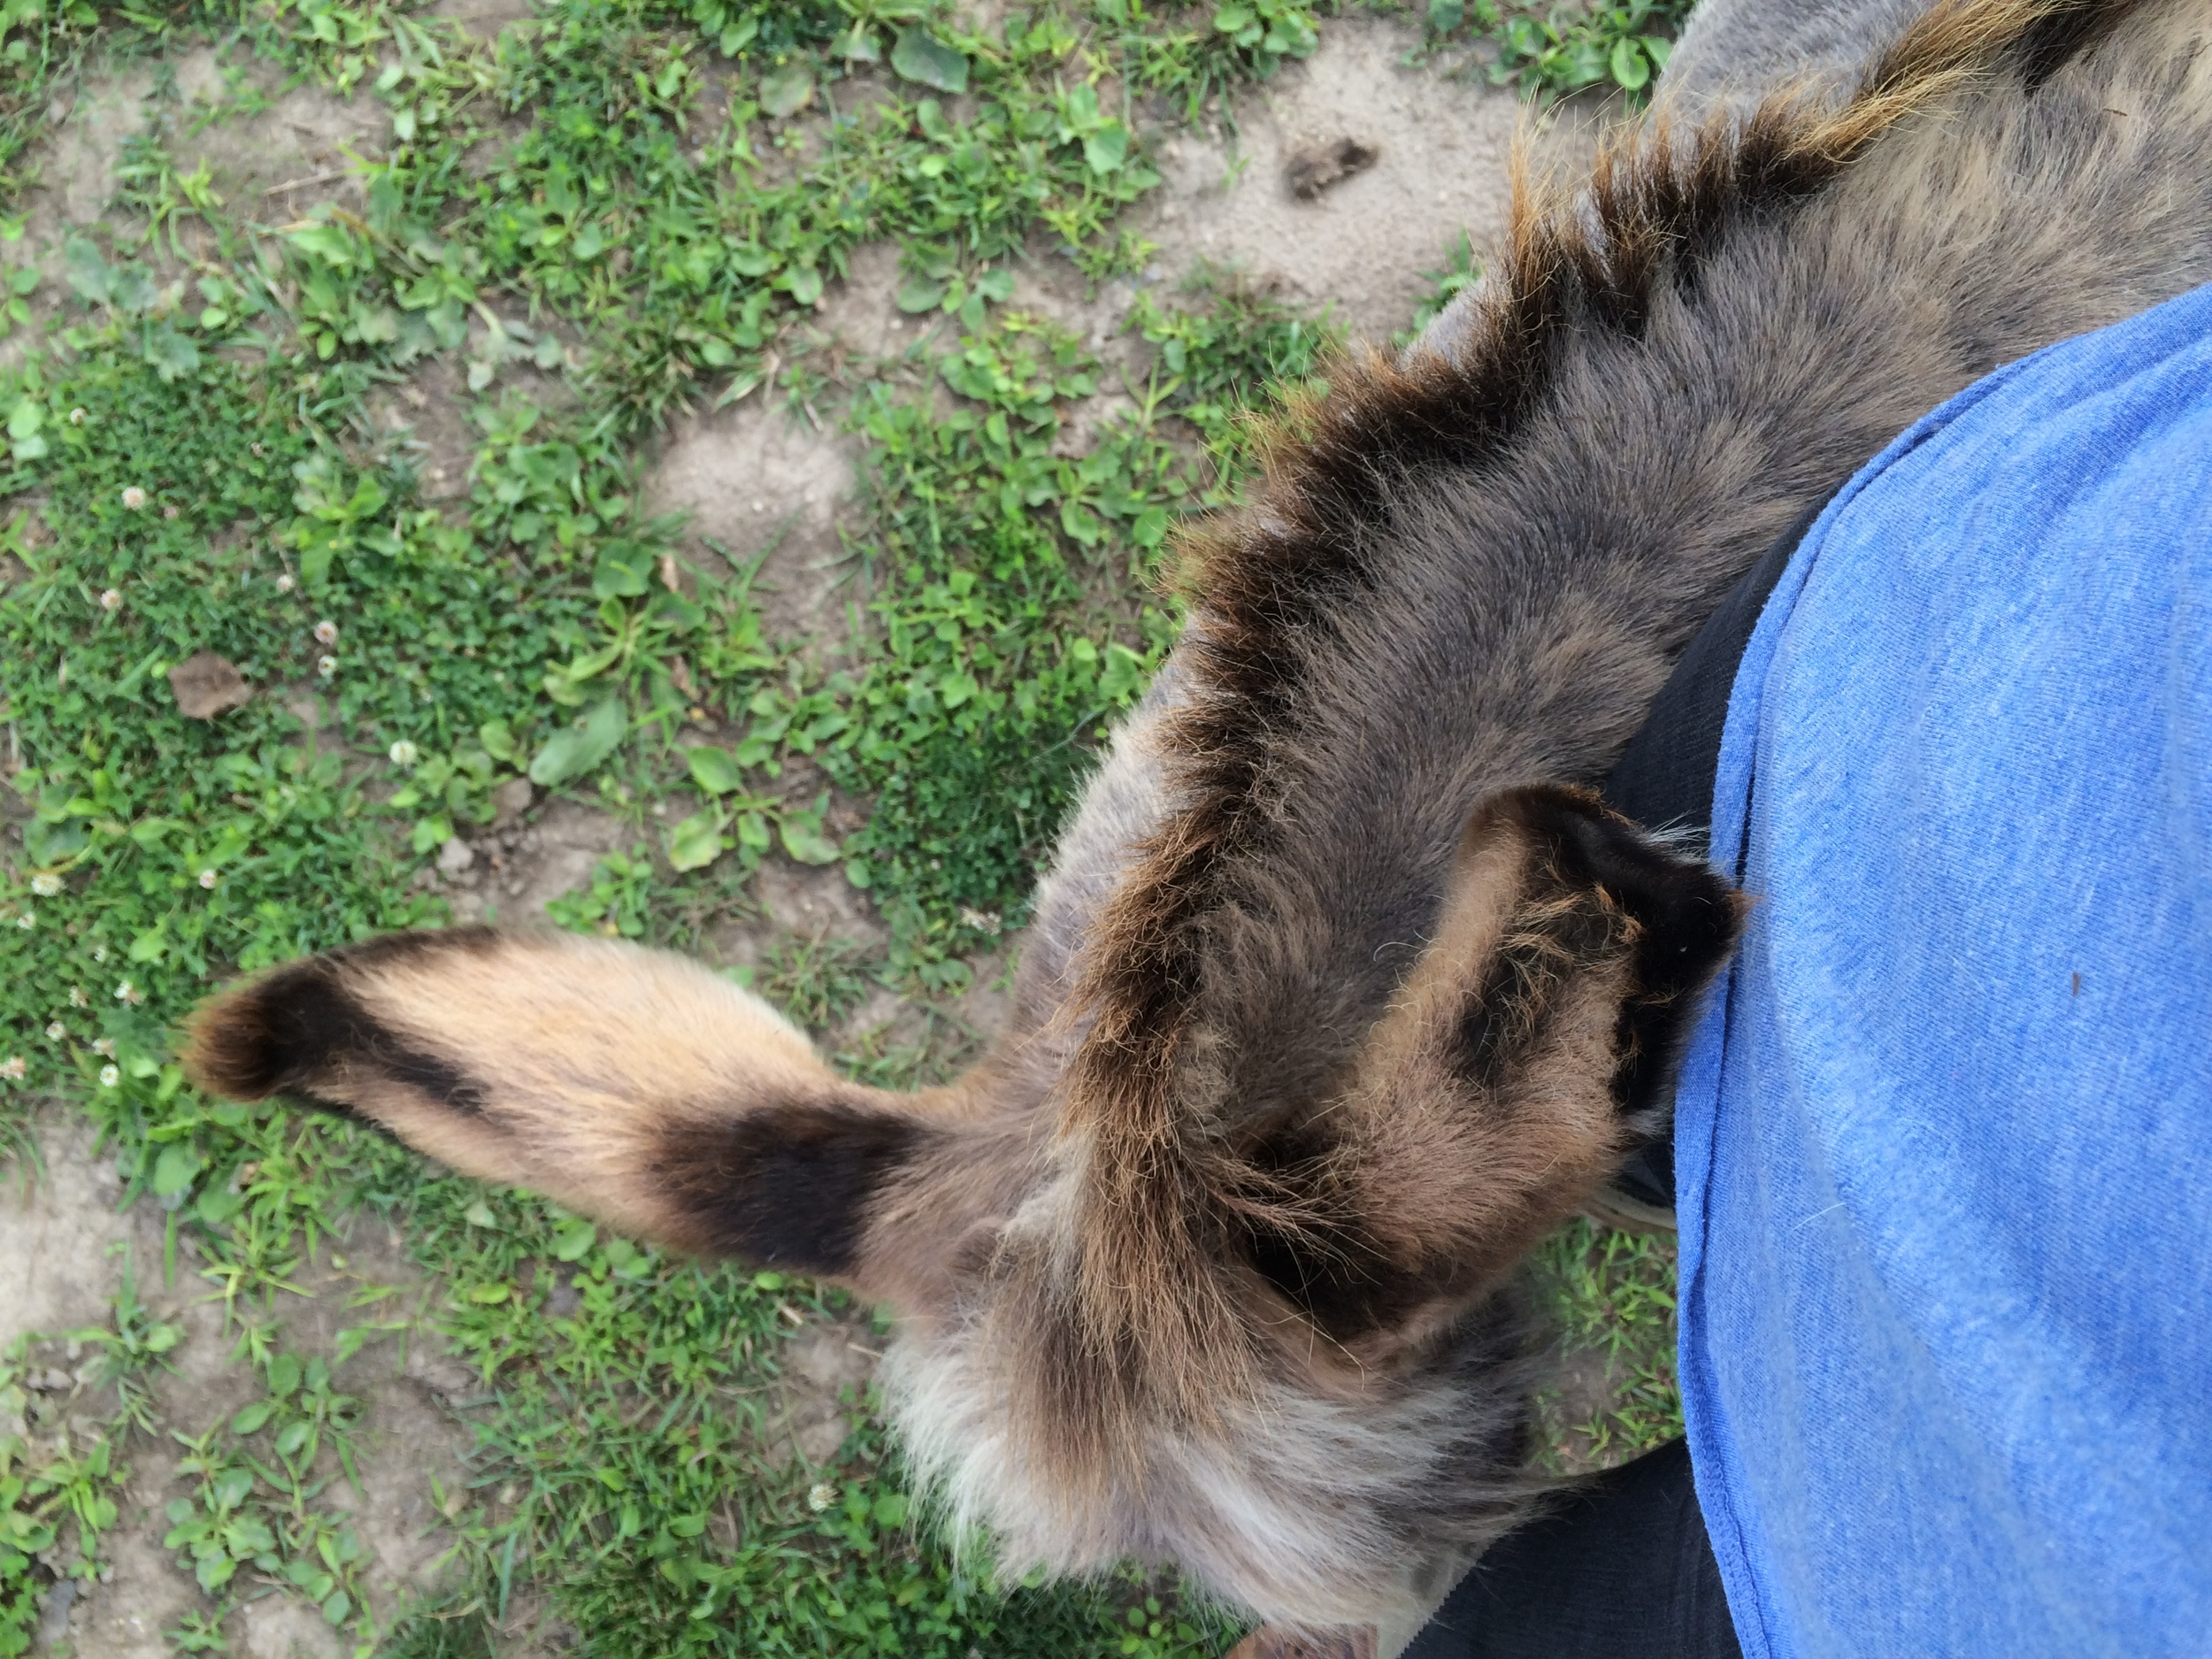 Lil' John wrapped around my leg. Reportedly, he was a standoffish donkey. Hard to imagine!